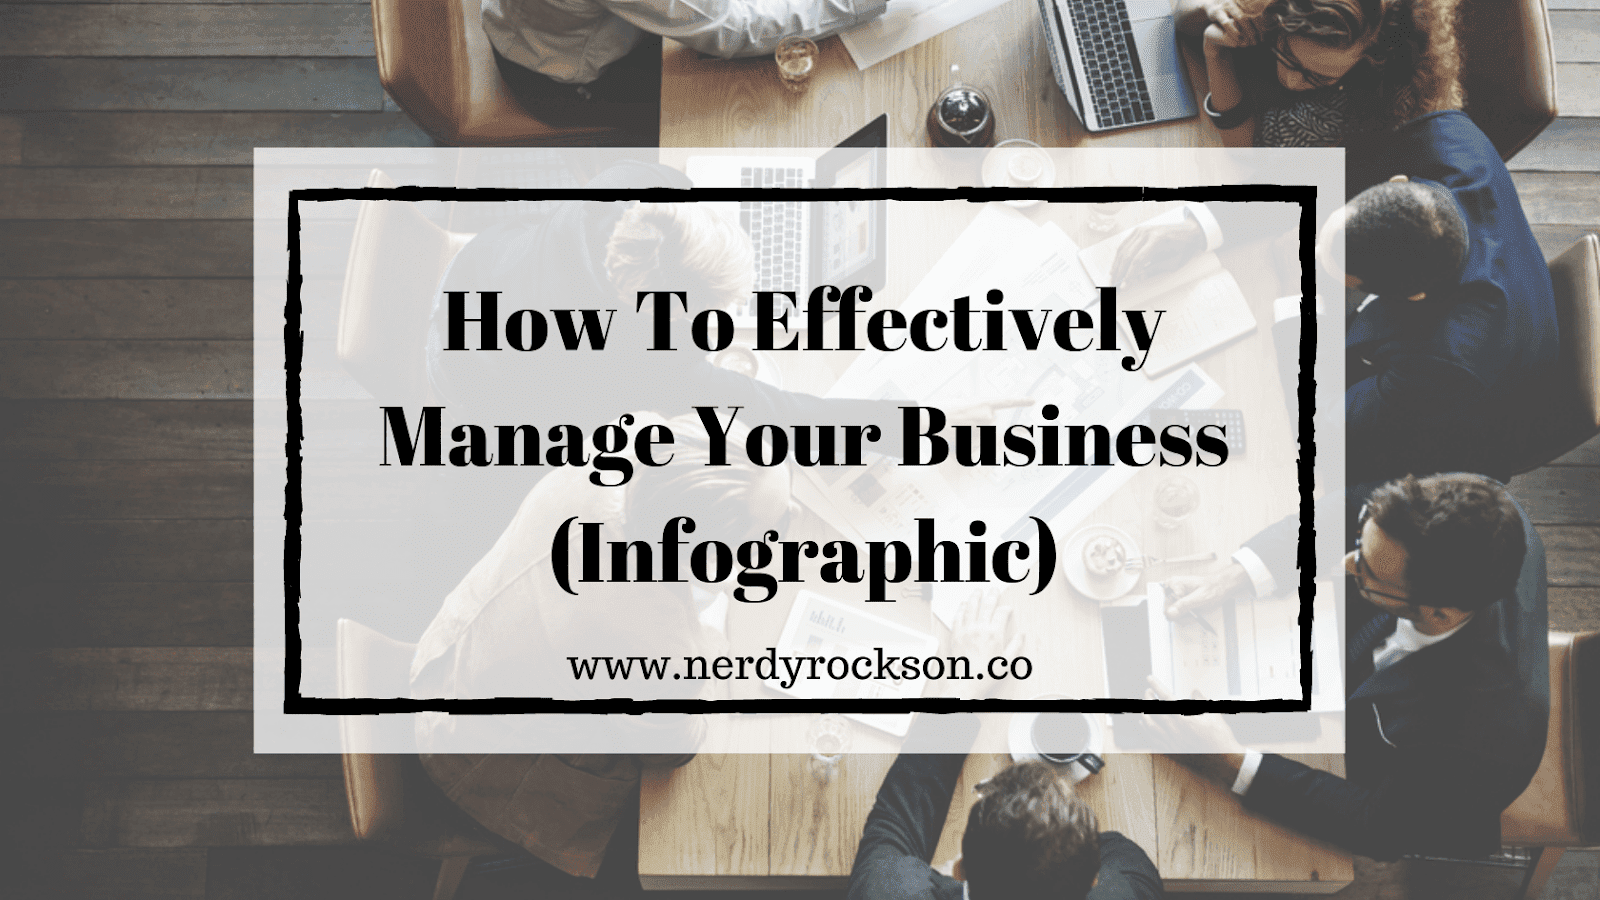 How To Effectively Manage Your Business (Infographic)